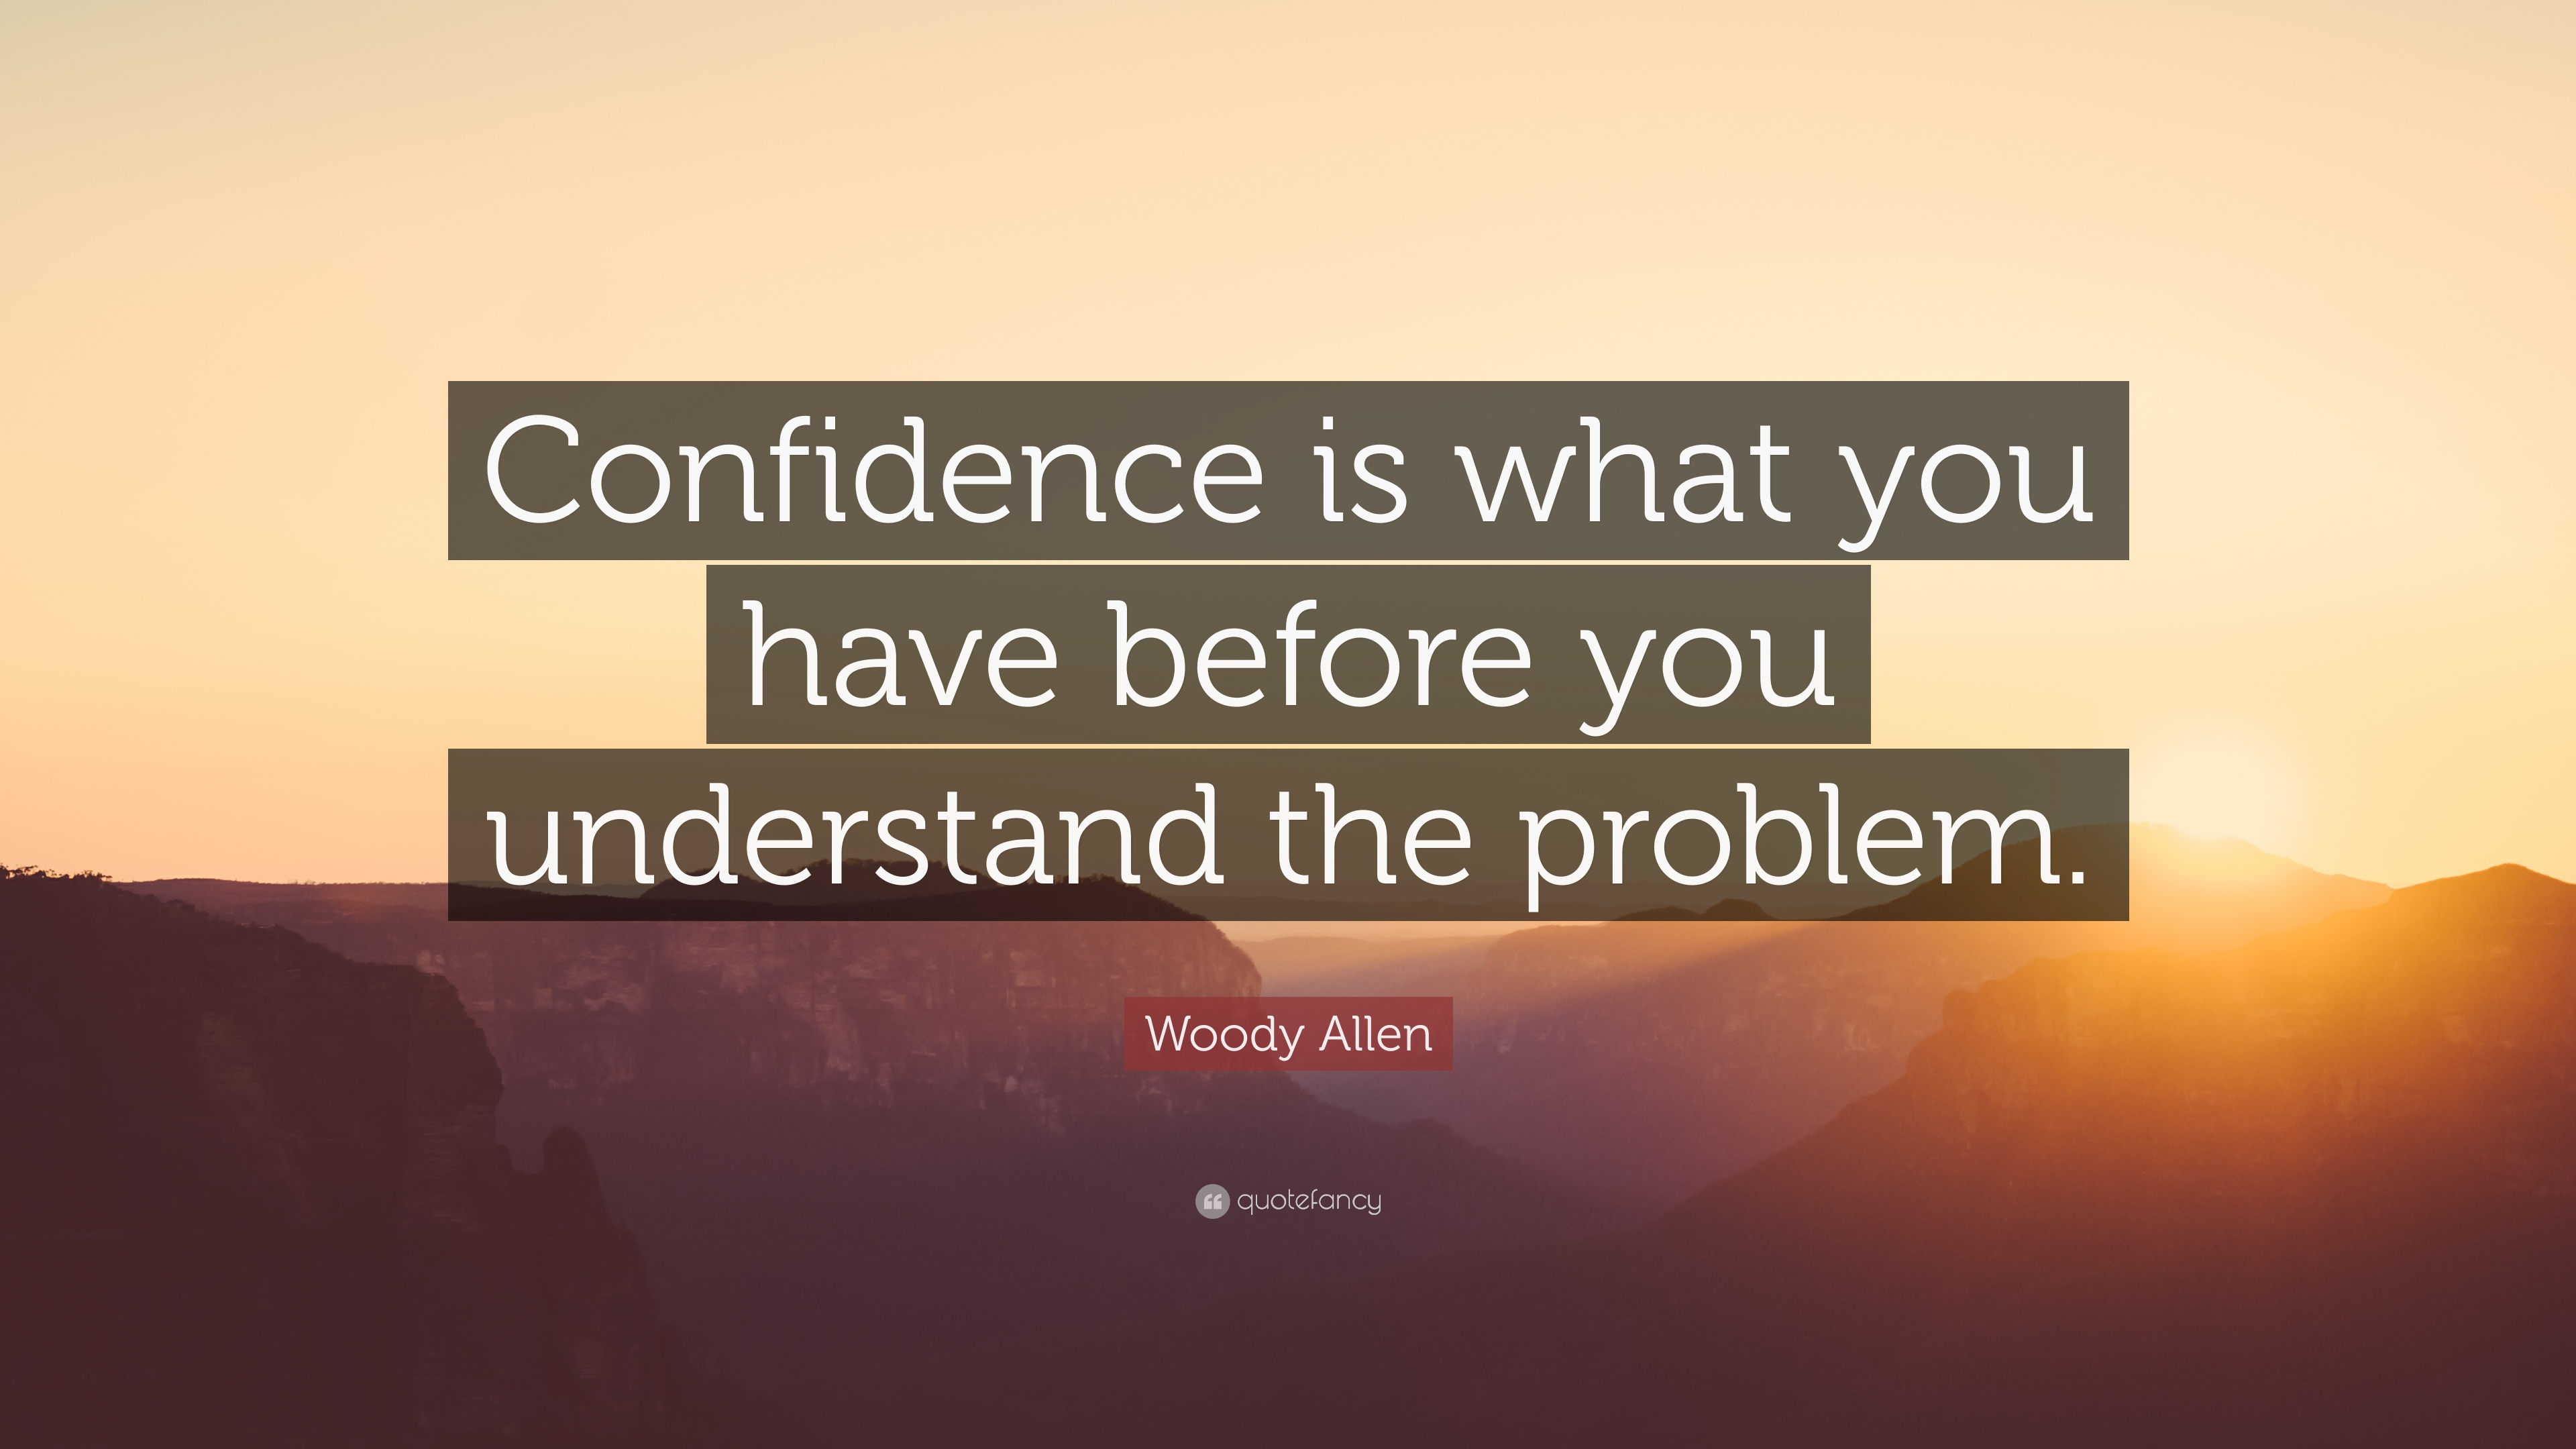 Quotes Confidence Witty Quotes 40 Wallpapers  Quotefancy